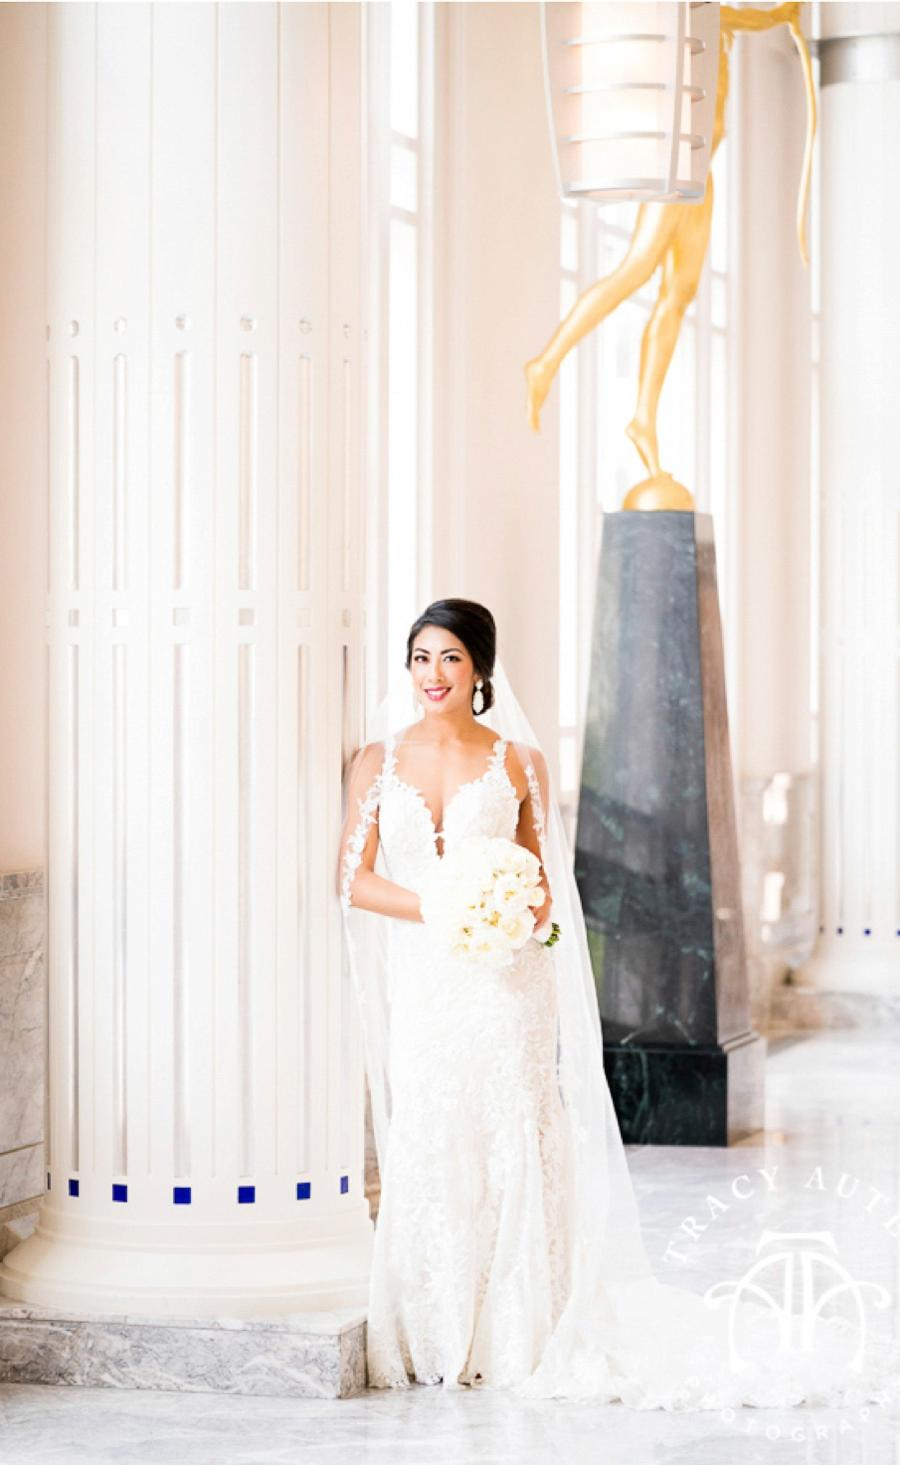 A bride posing against a pillar with a bouquet of flowers in hand